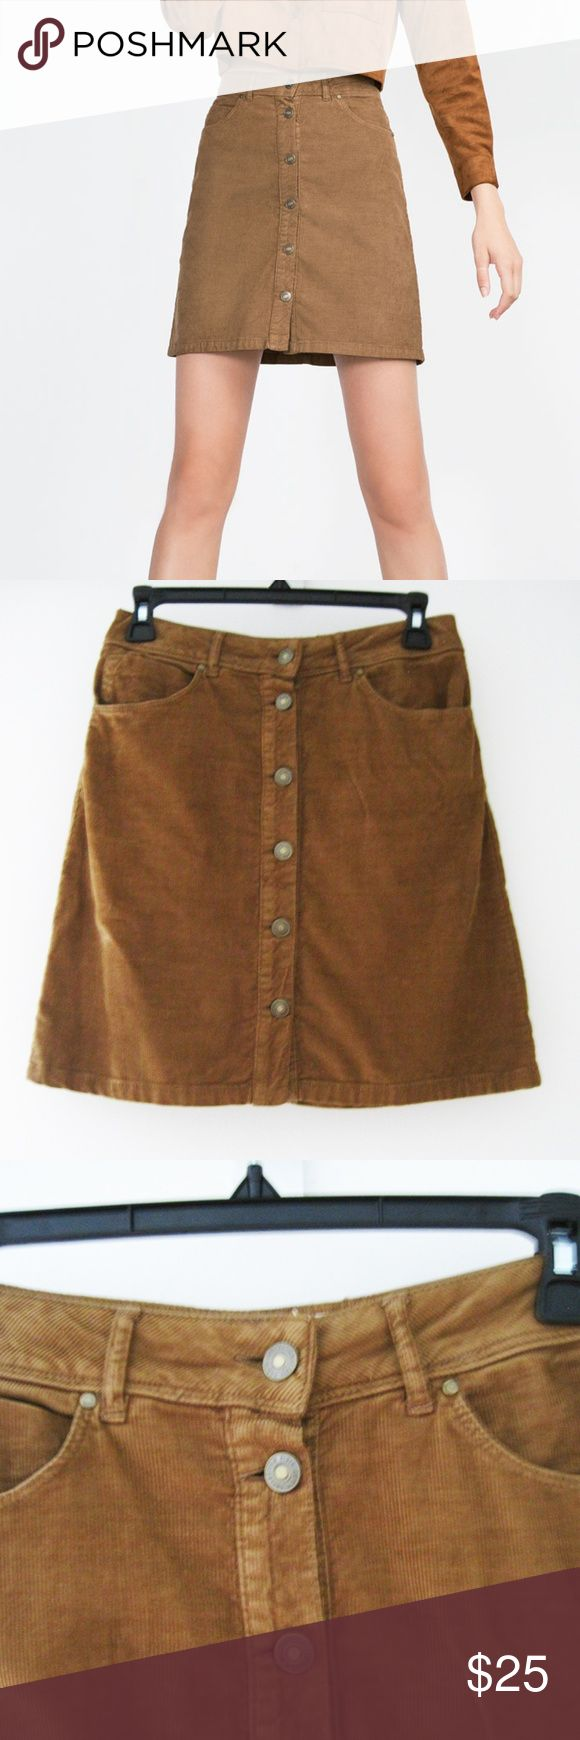 """Zara Brown Corduroy Button-Up Skirt XS Brown corduroy button-up skirt with front and back pockets. Excellent condition-worn 2x. Smoke/pet-free home. Feel free to ask questions. All images are my own except for the 1st and last 2 photos. Credited to Zara online image. Measurements: Length: 18"""" Waist: 28"""" Hip: 33"""" Zara Skirts Mini"""